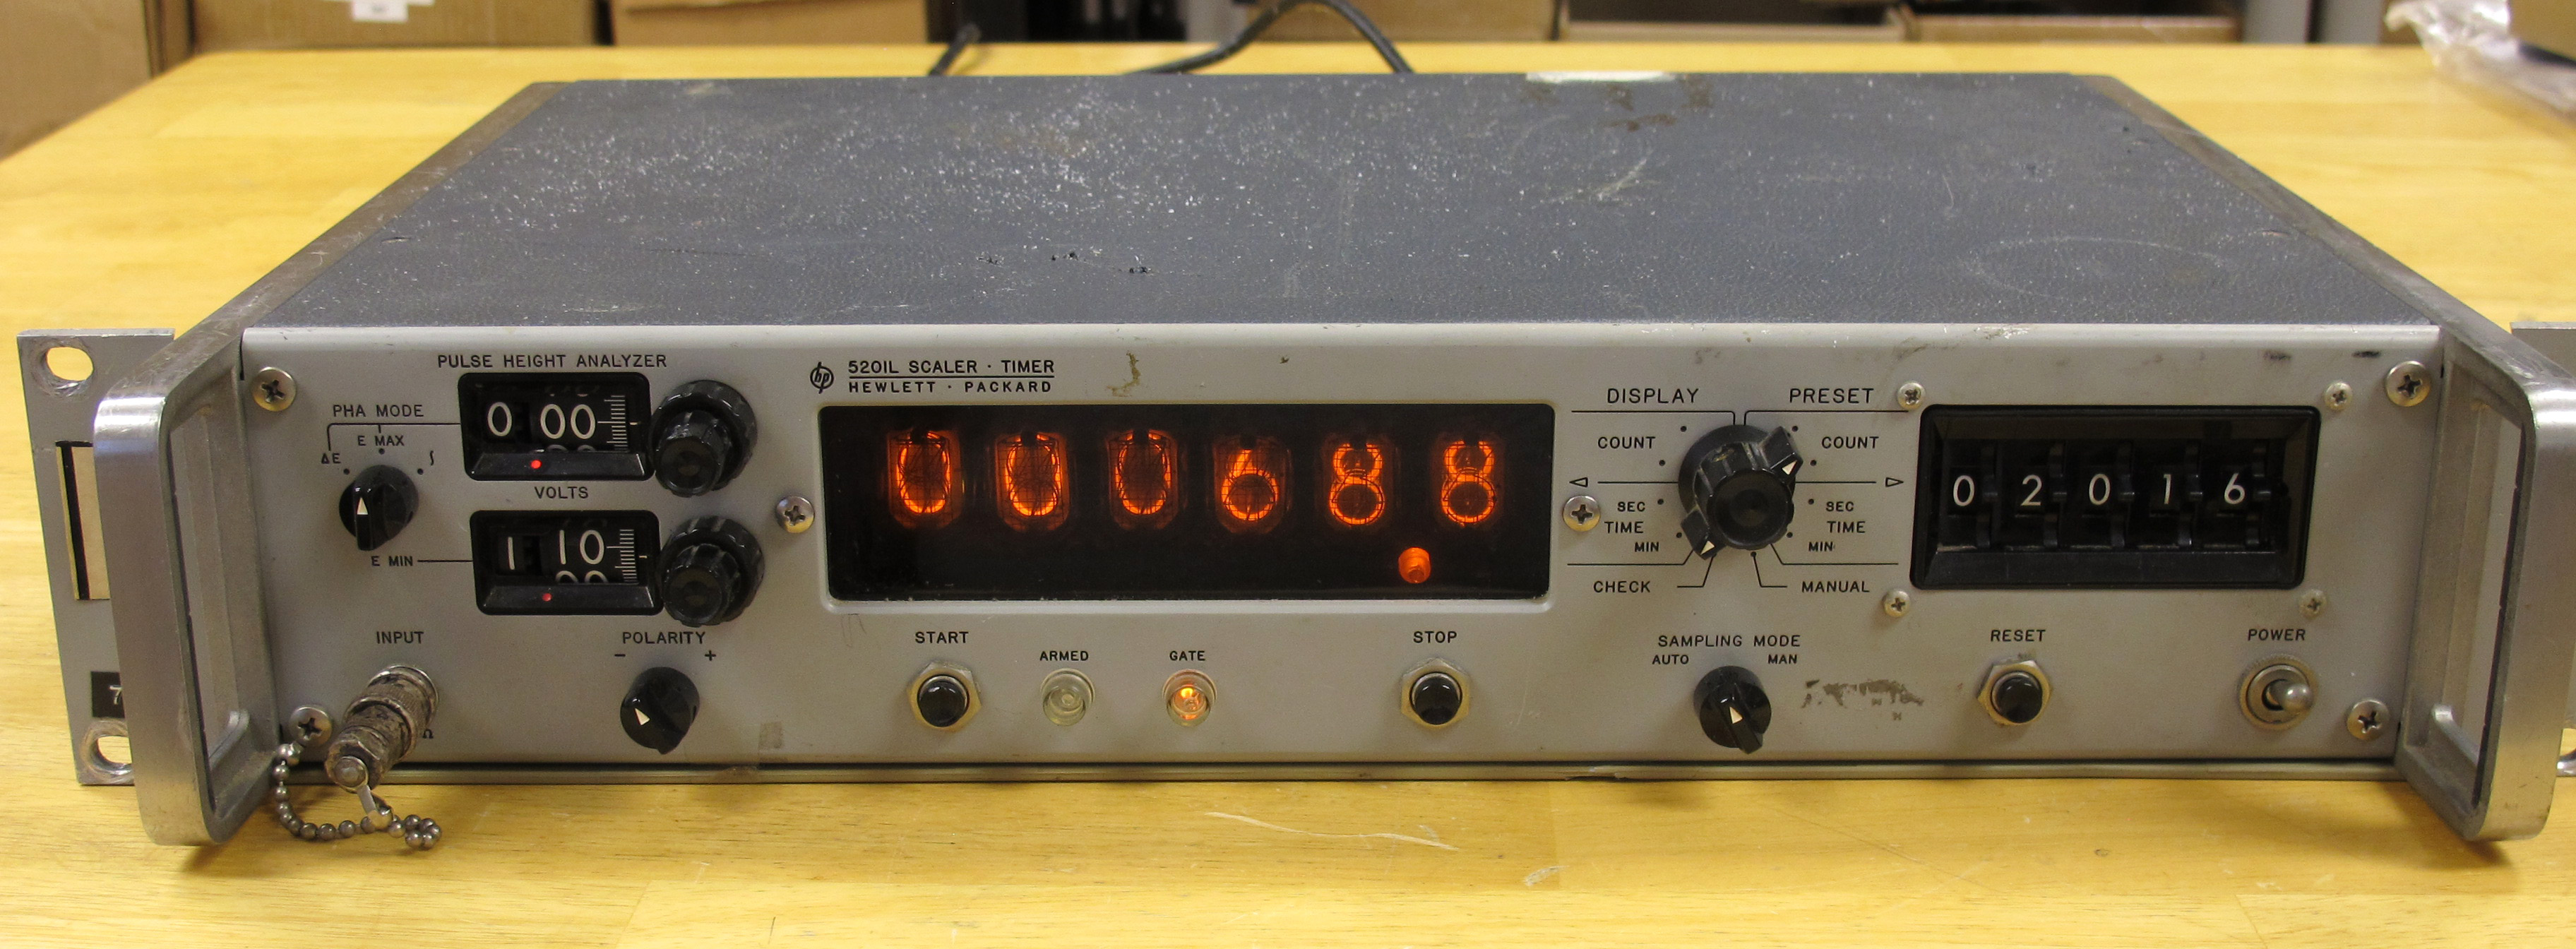 Hp 5201lpulse Height Analyzer Scaler Timer Circa 1966 Page 1 Amplifier At First I Was Looking It As A Cheap Source Of Nixies For Clock Or To Gut The Insides And Turn Whole Thing Into